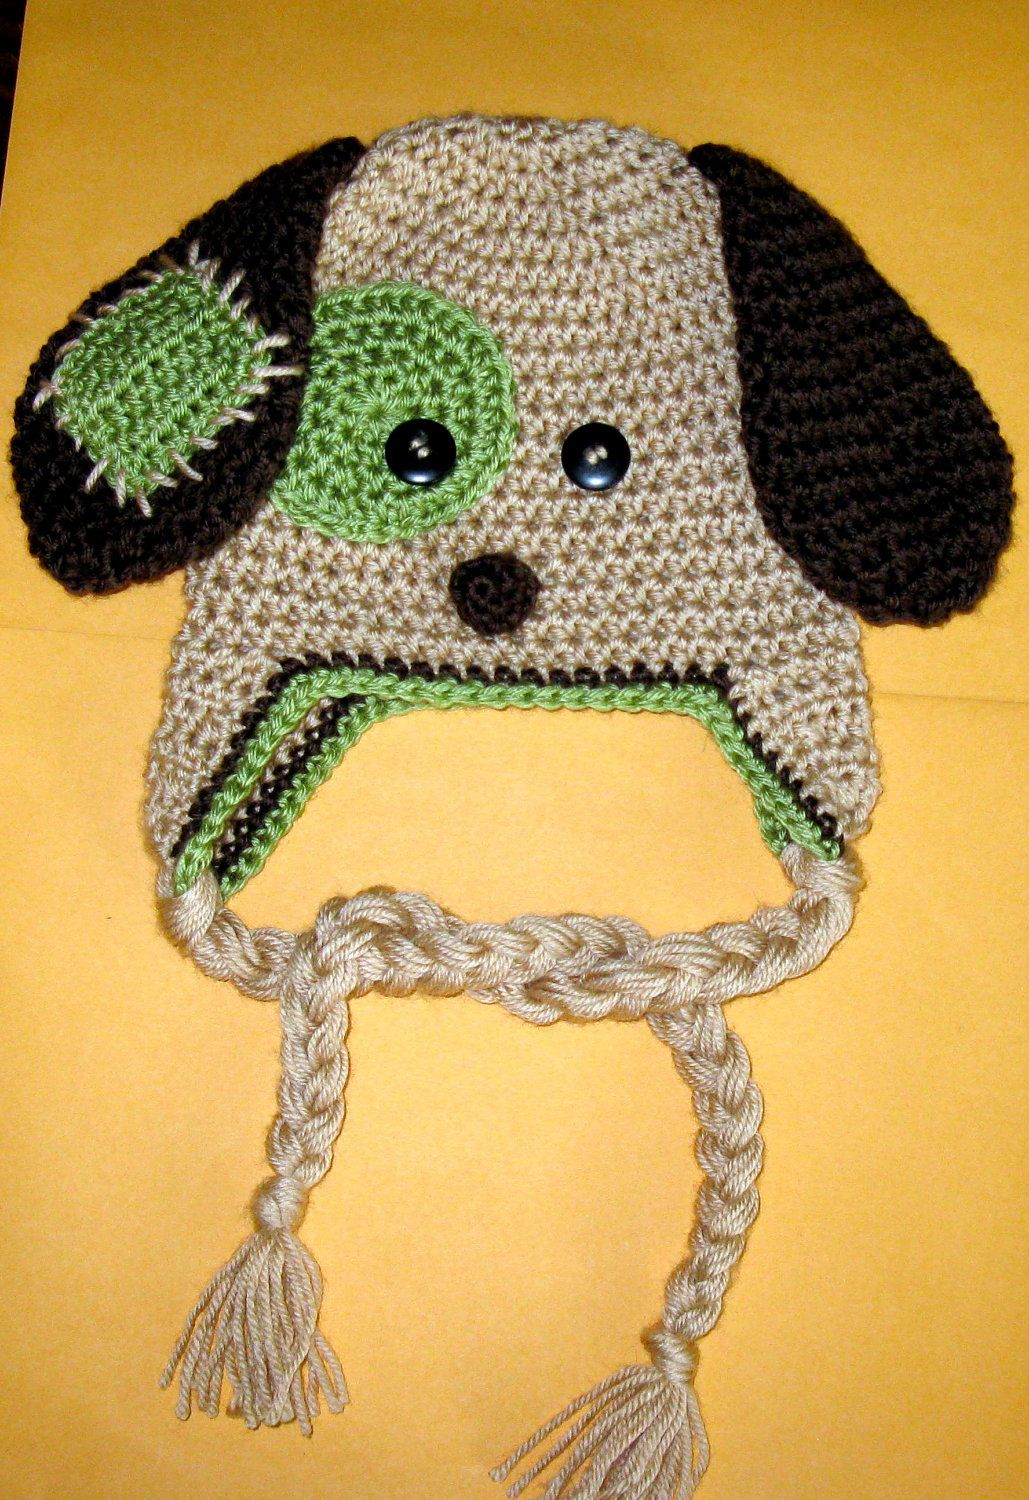 Patchy puppy hat pattern crochet pattern 18 beanie and earflap patchy puppy hat pattern crochet pattern 18 beanie and earflap pattern newborn to adult sizes instant download bankloansurffo Gallery